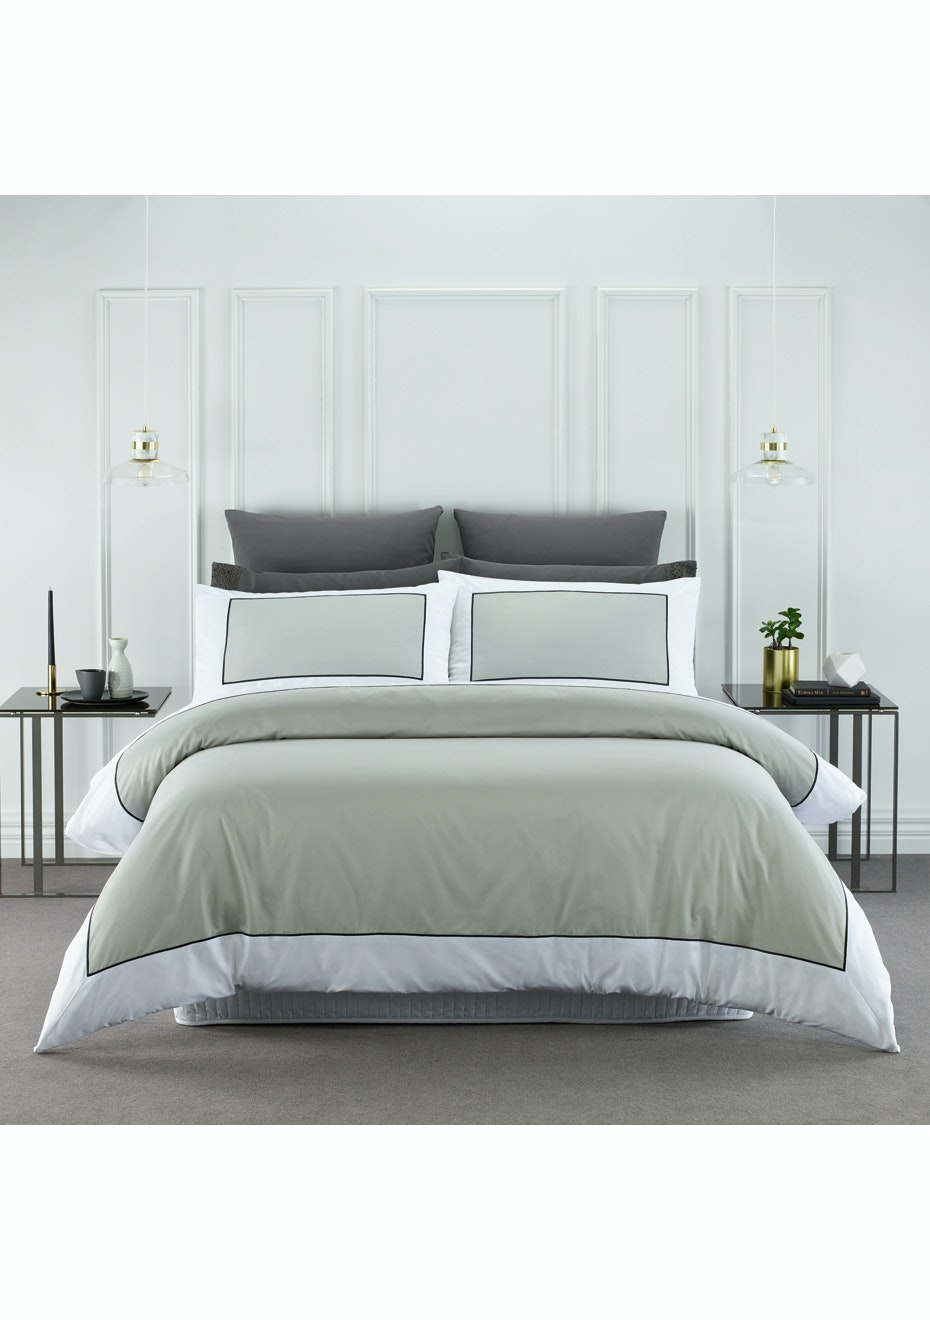 Style & Co 1000 Thread count Egyptian Cotton Hotel Collection Ascot Quilt Cover sets King Silver